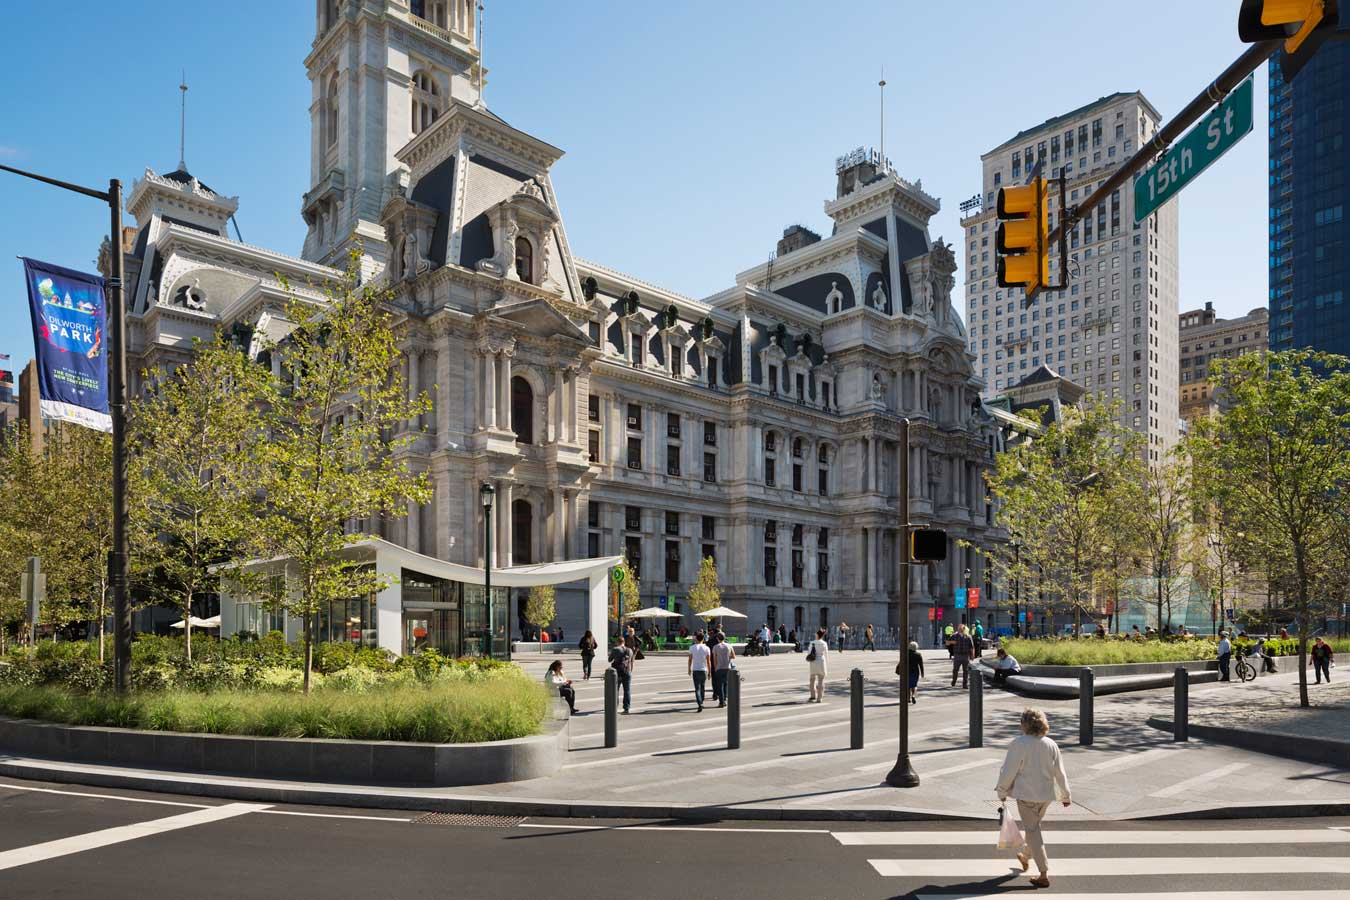 <p>In the new scheme, usable area increases by 21 percent. Multiple levels are eliminated, creating an even surface for the entire plaza, on grade with City Hall. The approach becomes more pedestrian-friendly, and a ring of trees at the periphery defines a boundary to create an oasis within the busy center of the city. <br><small>&copy; James Ewing Photography</small></p>